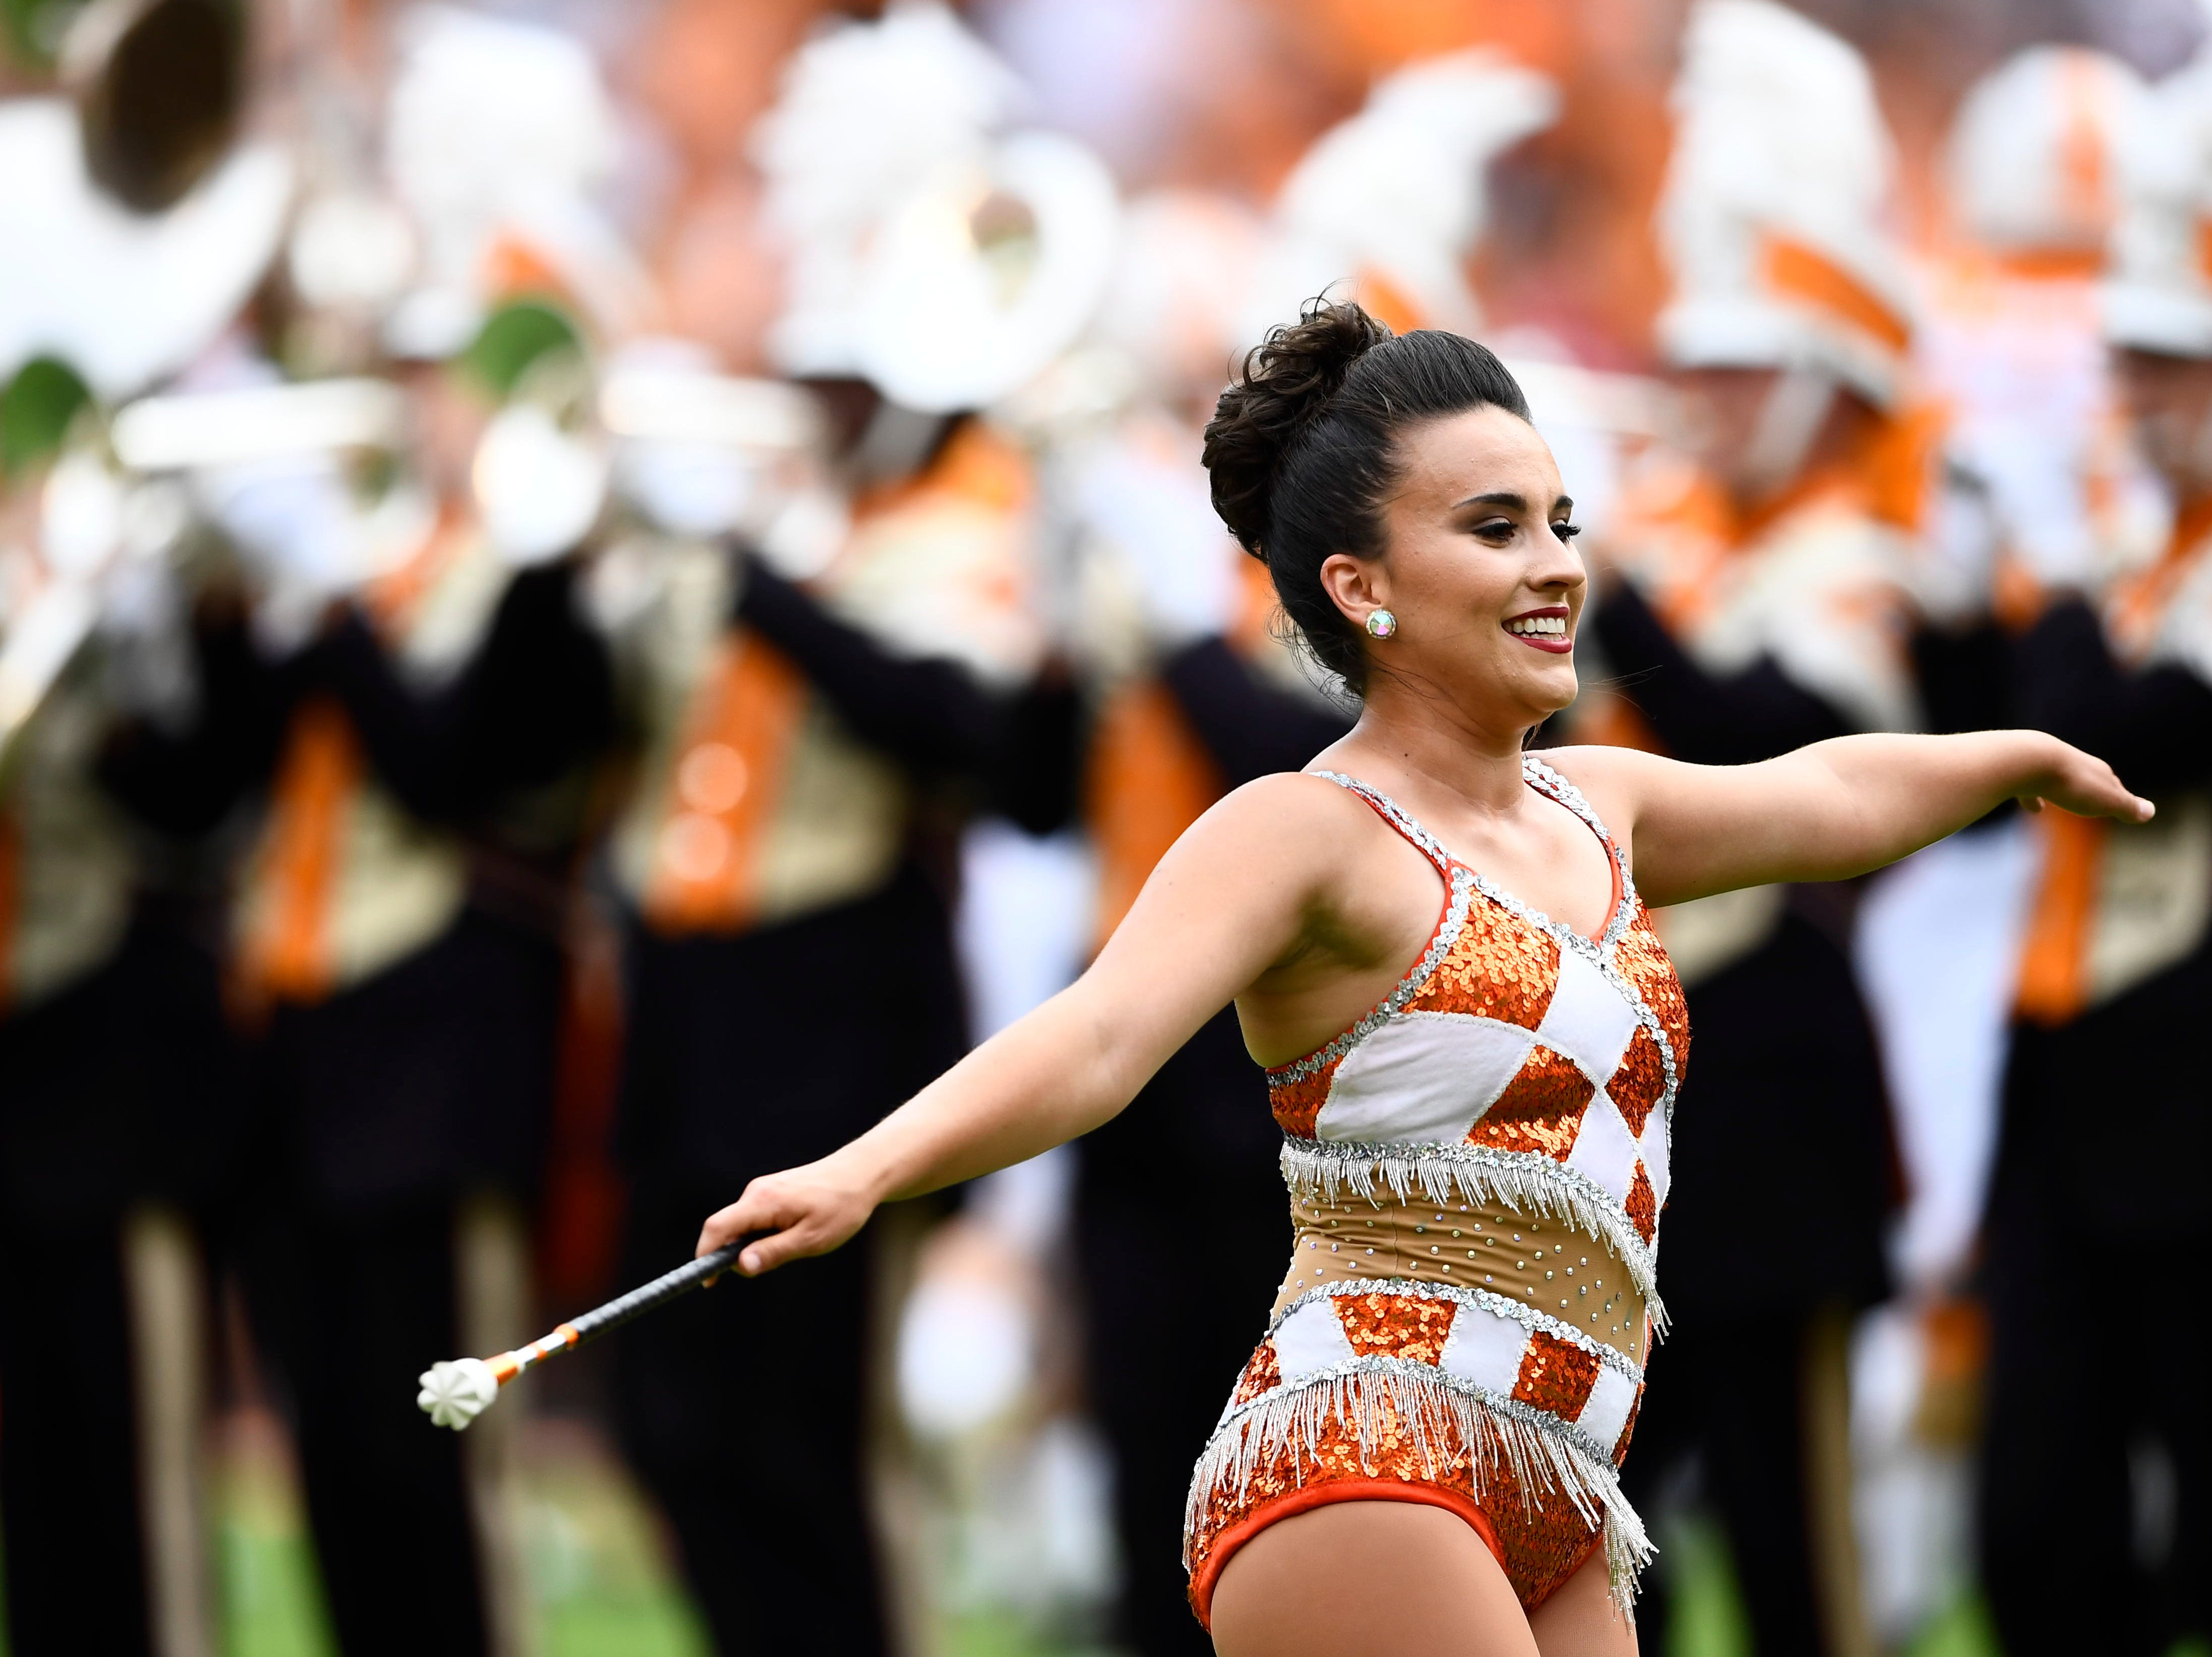 A Tennessee Majorette performs on the field during a game between Tennessee and ETSU at Neyland Stadium in Knoxville, Tennessee on Saturday, September 8, 2018.